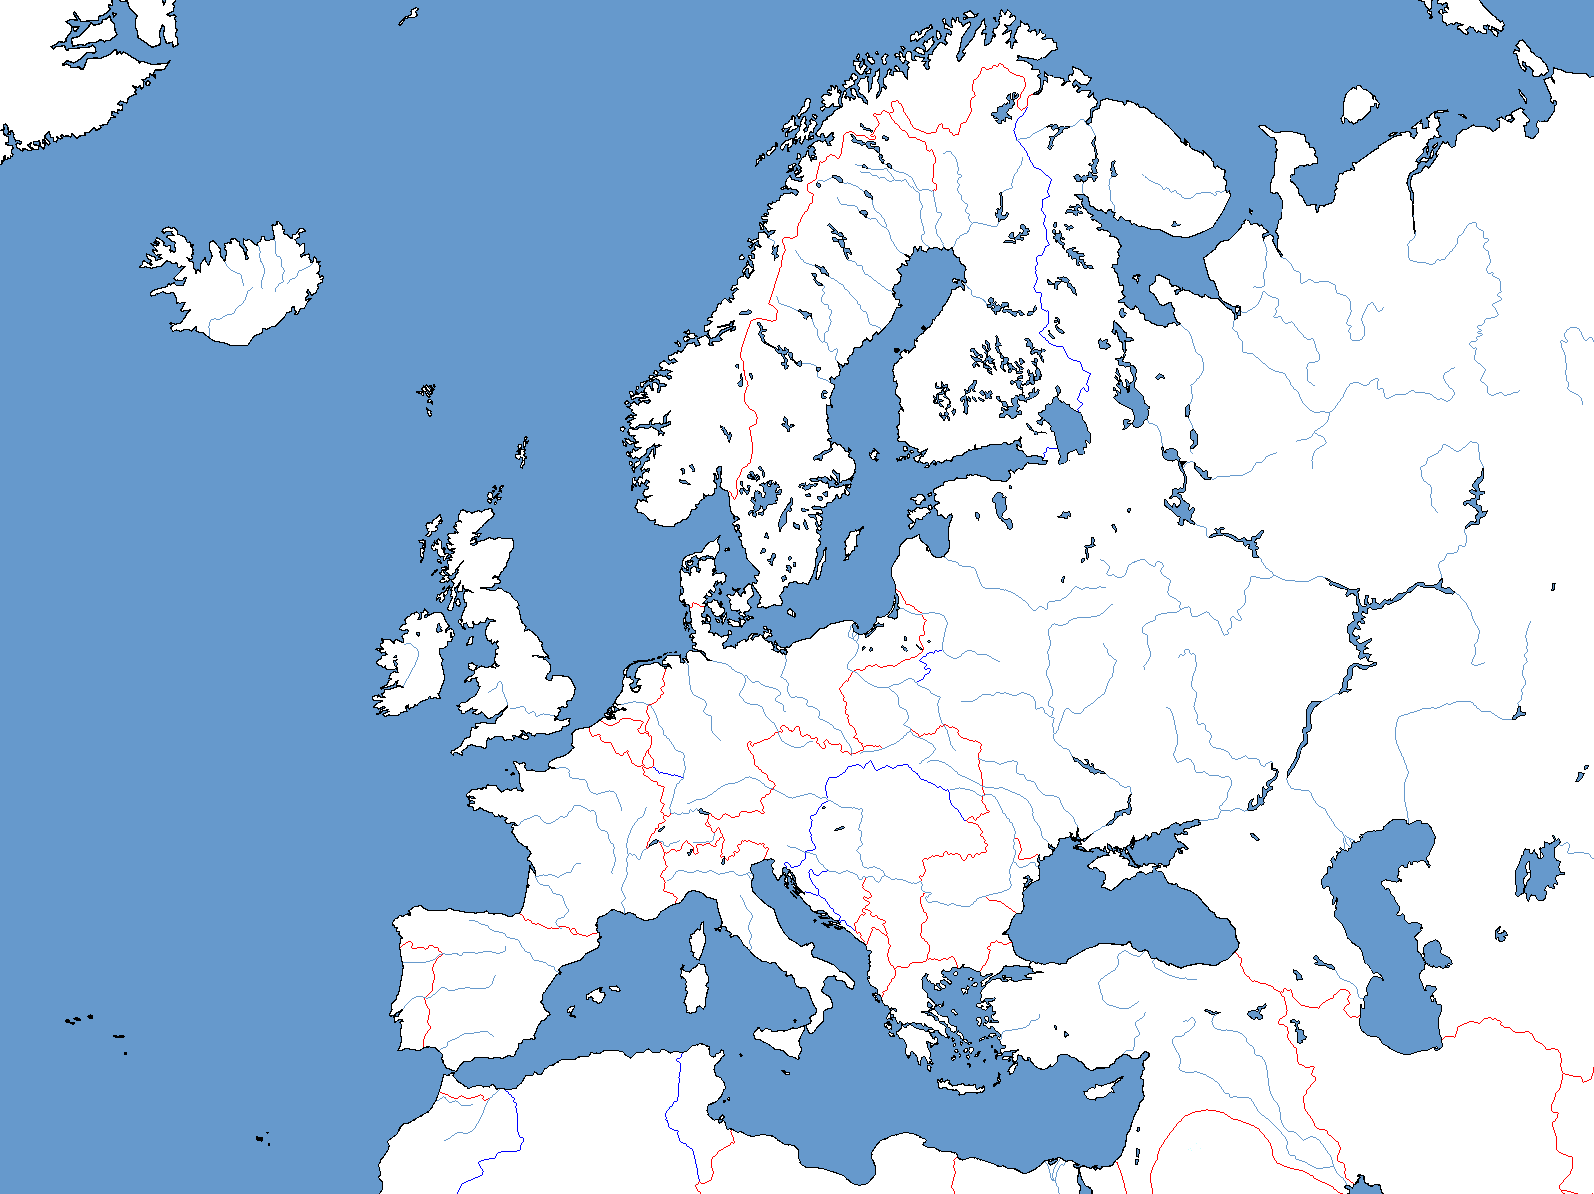 Blank Map Of Europe With Borders.A Blank Map Thread Page 128 Alternate History Discussion